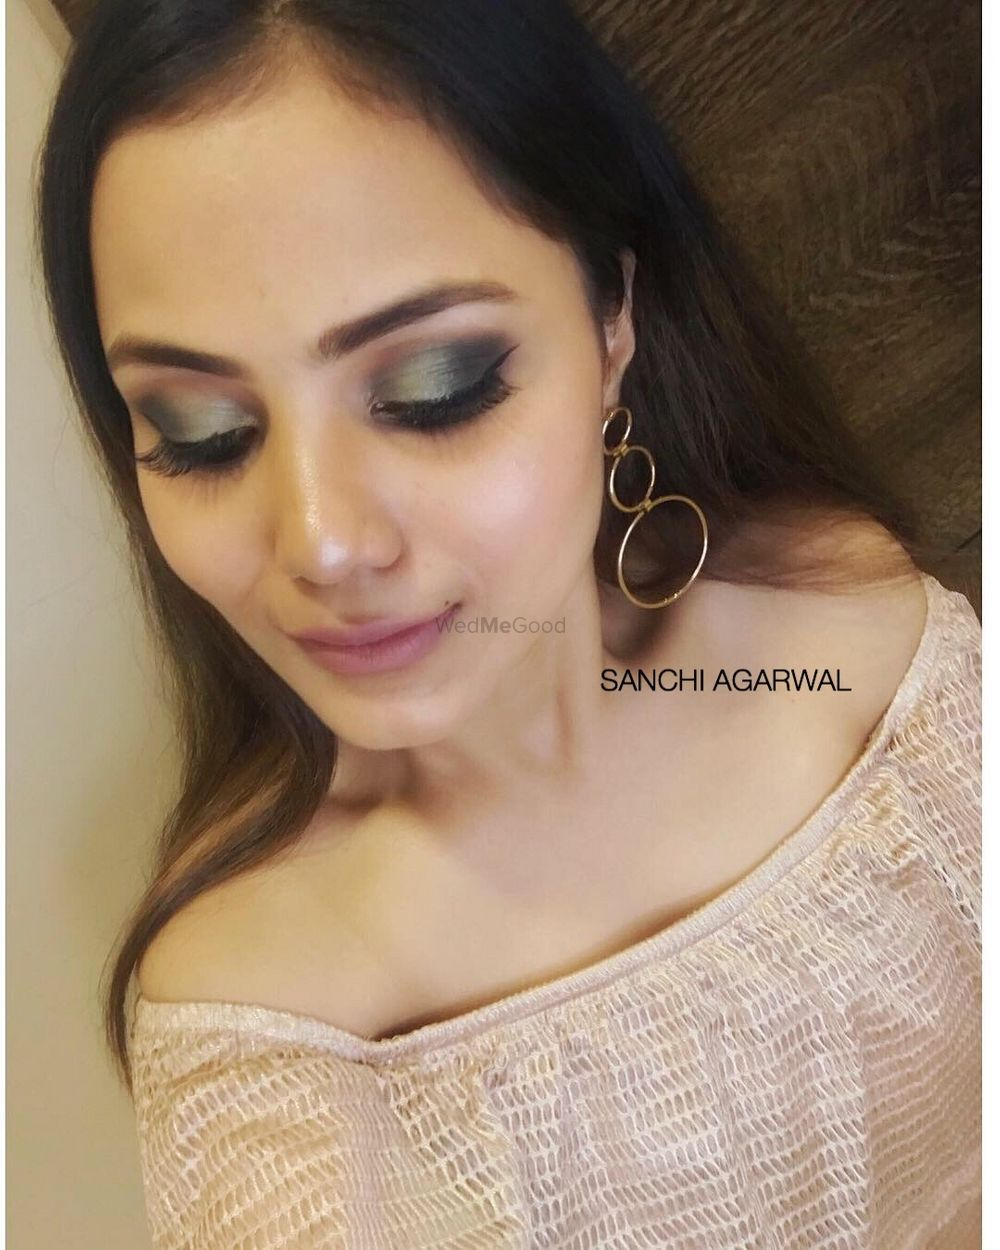 Photo From Party Glam Makeup Look - By Sanchi Agarwal Makeovers